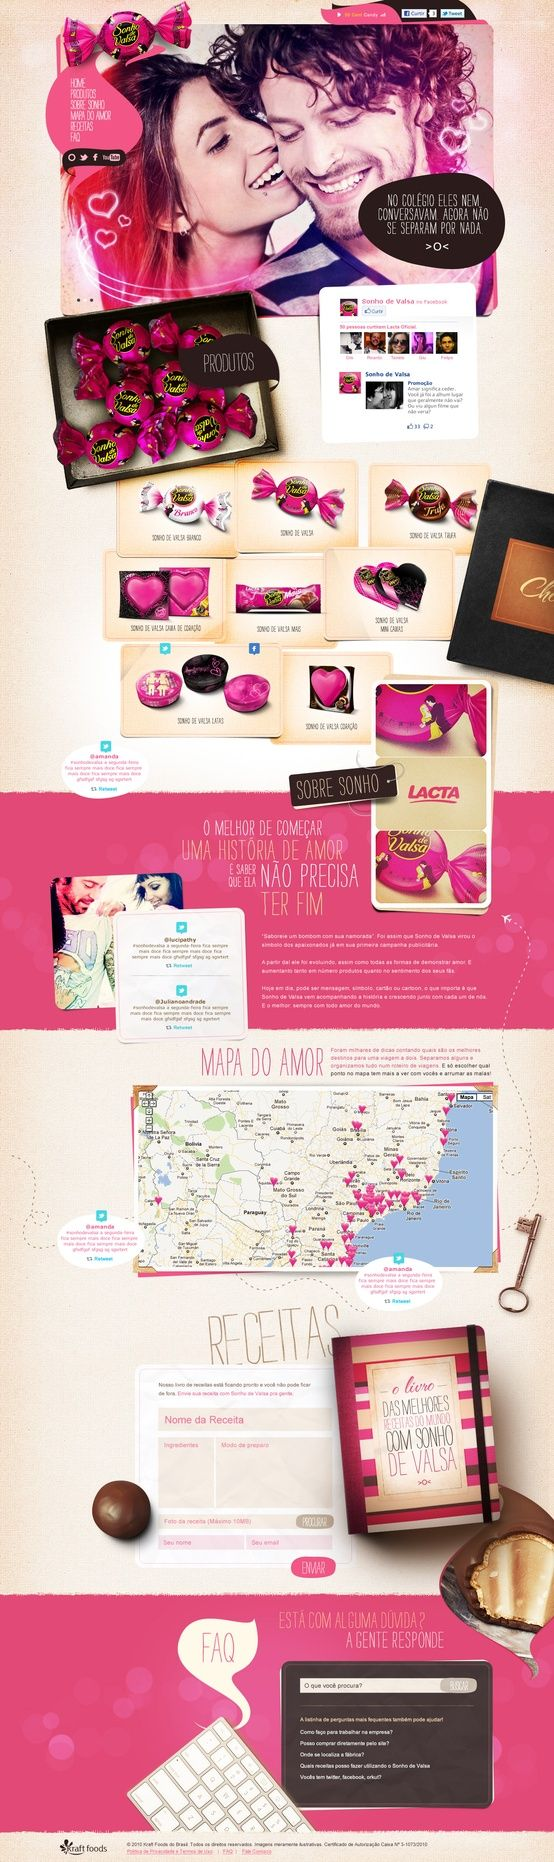 #Creative #webdesign with a splash of crazy #pink!